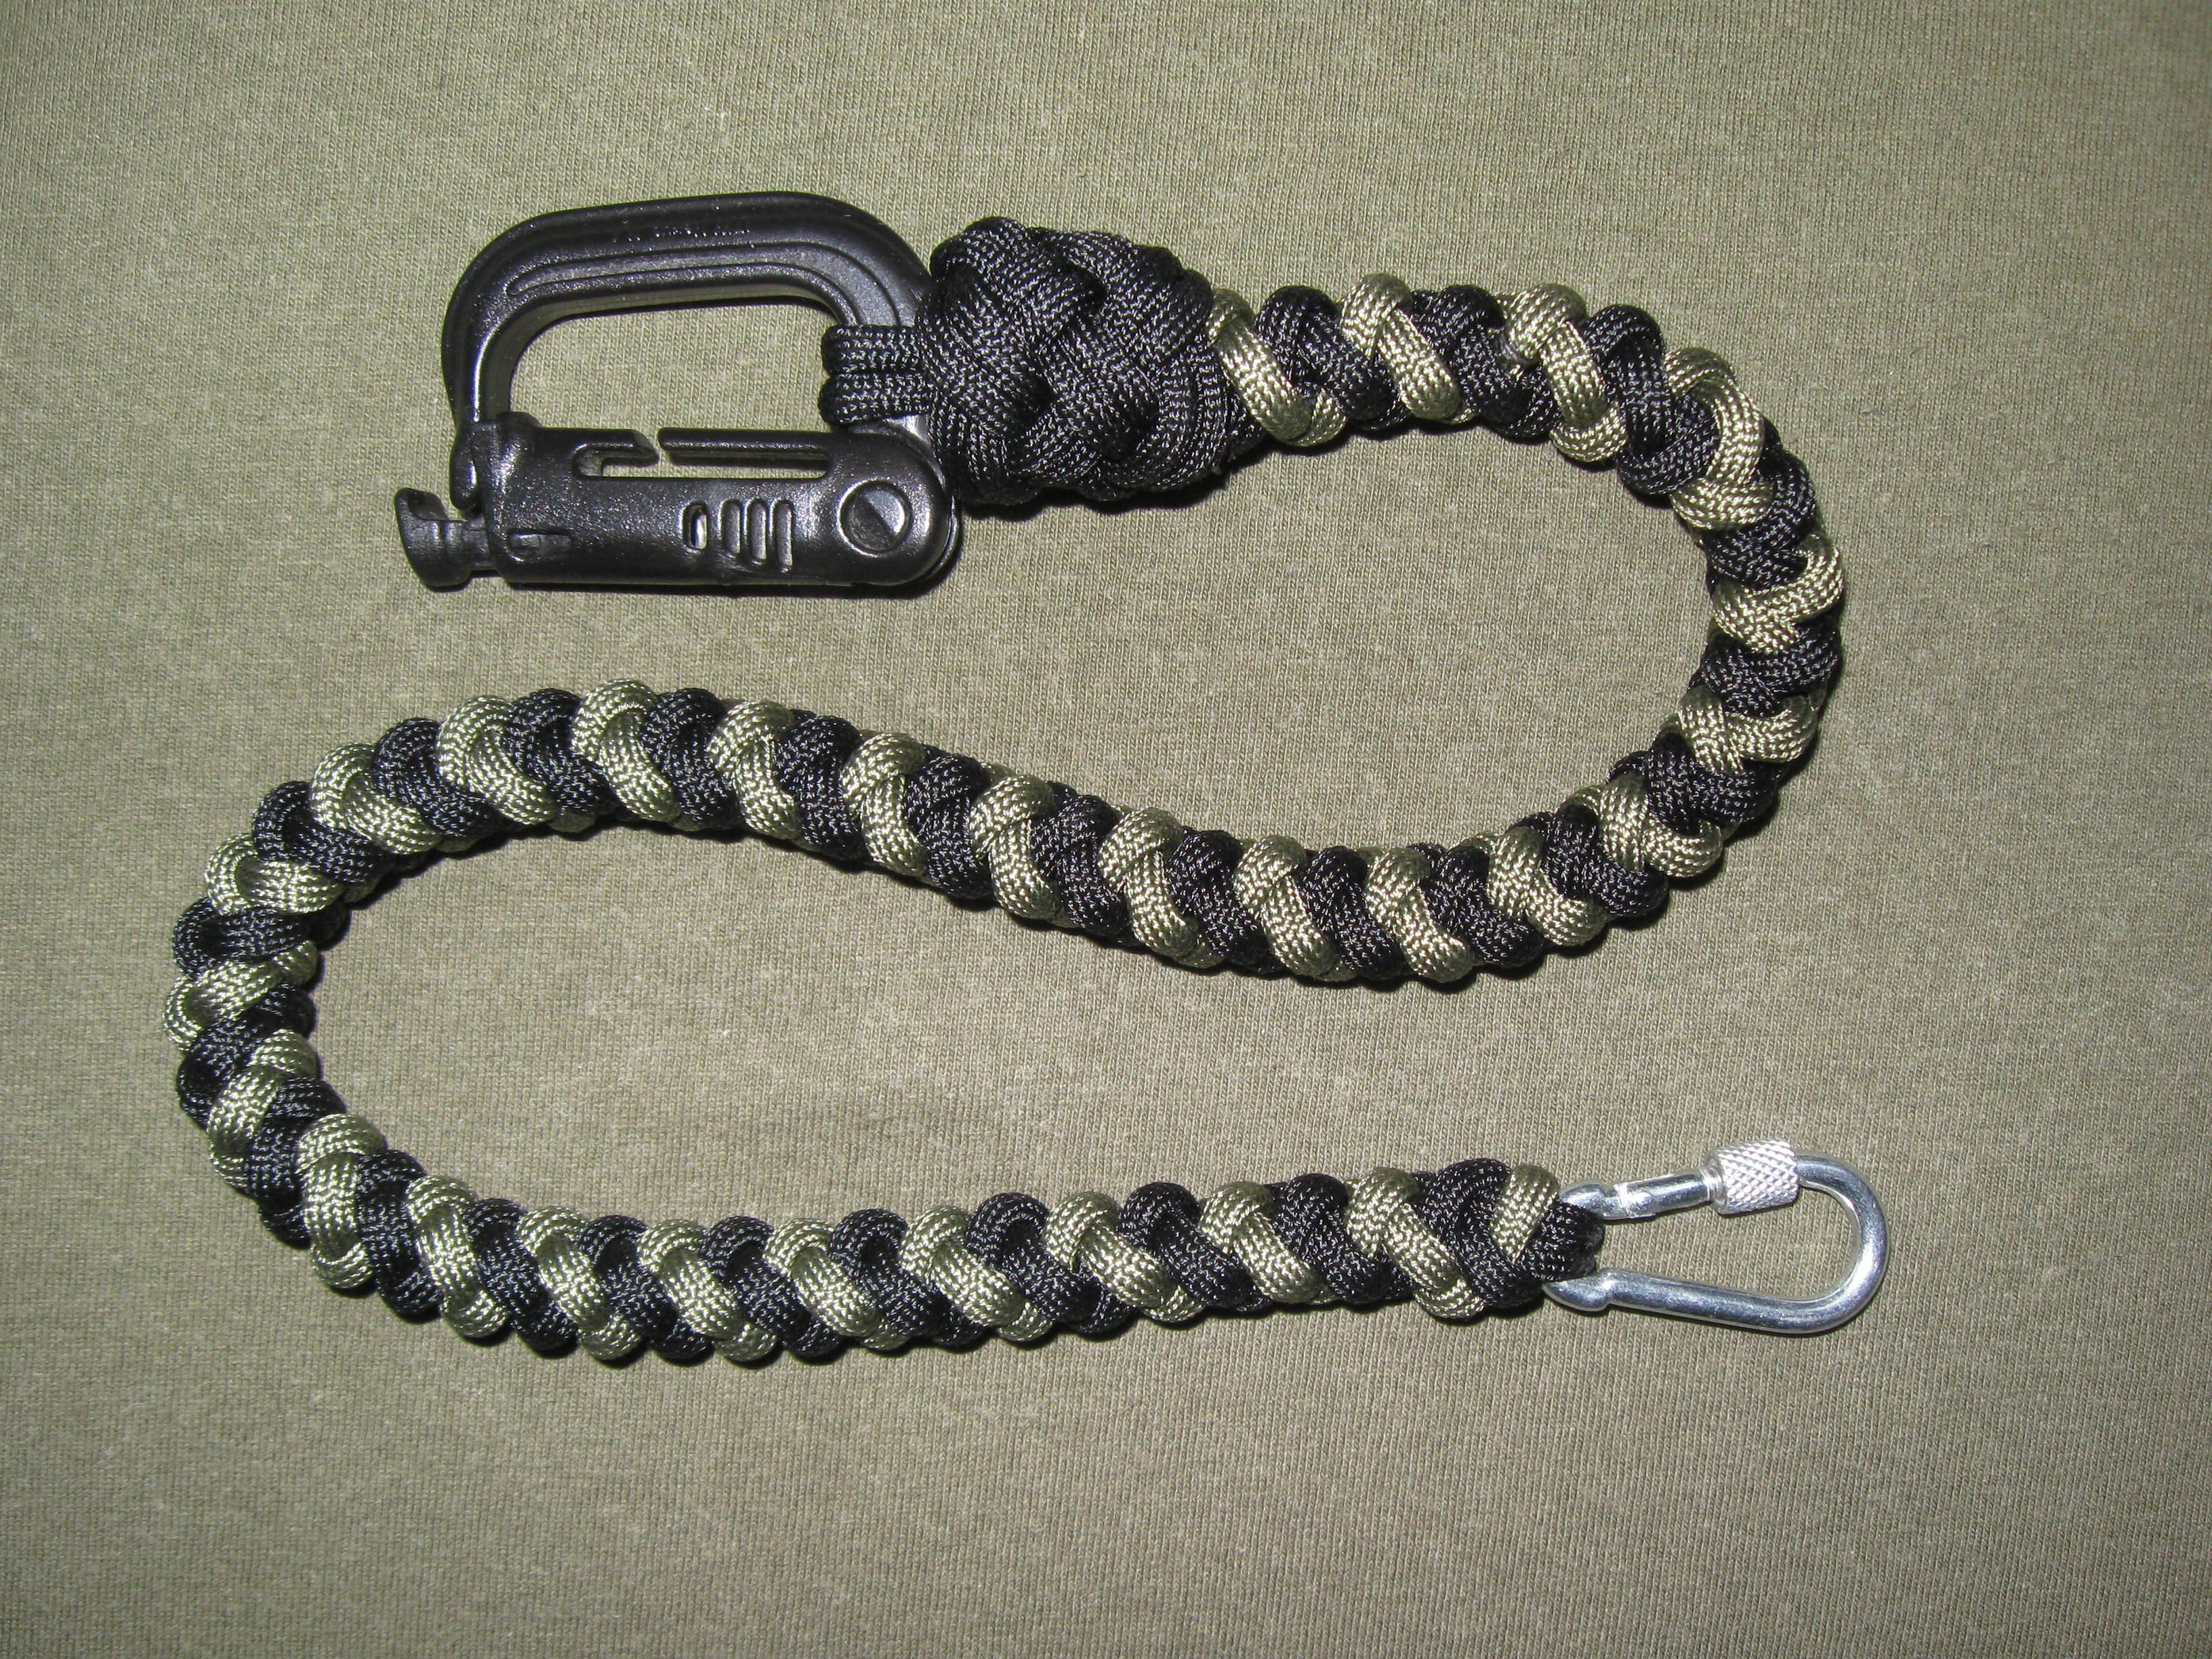 4 Strand Spiral Round Braid Wallet Chain With Grimlock Paracord